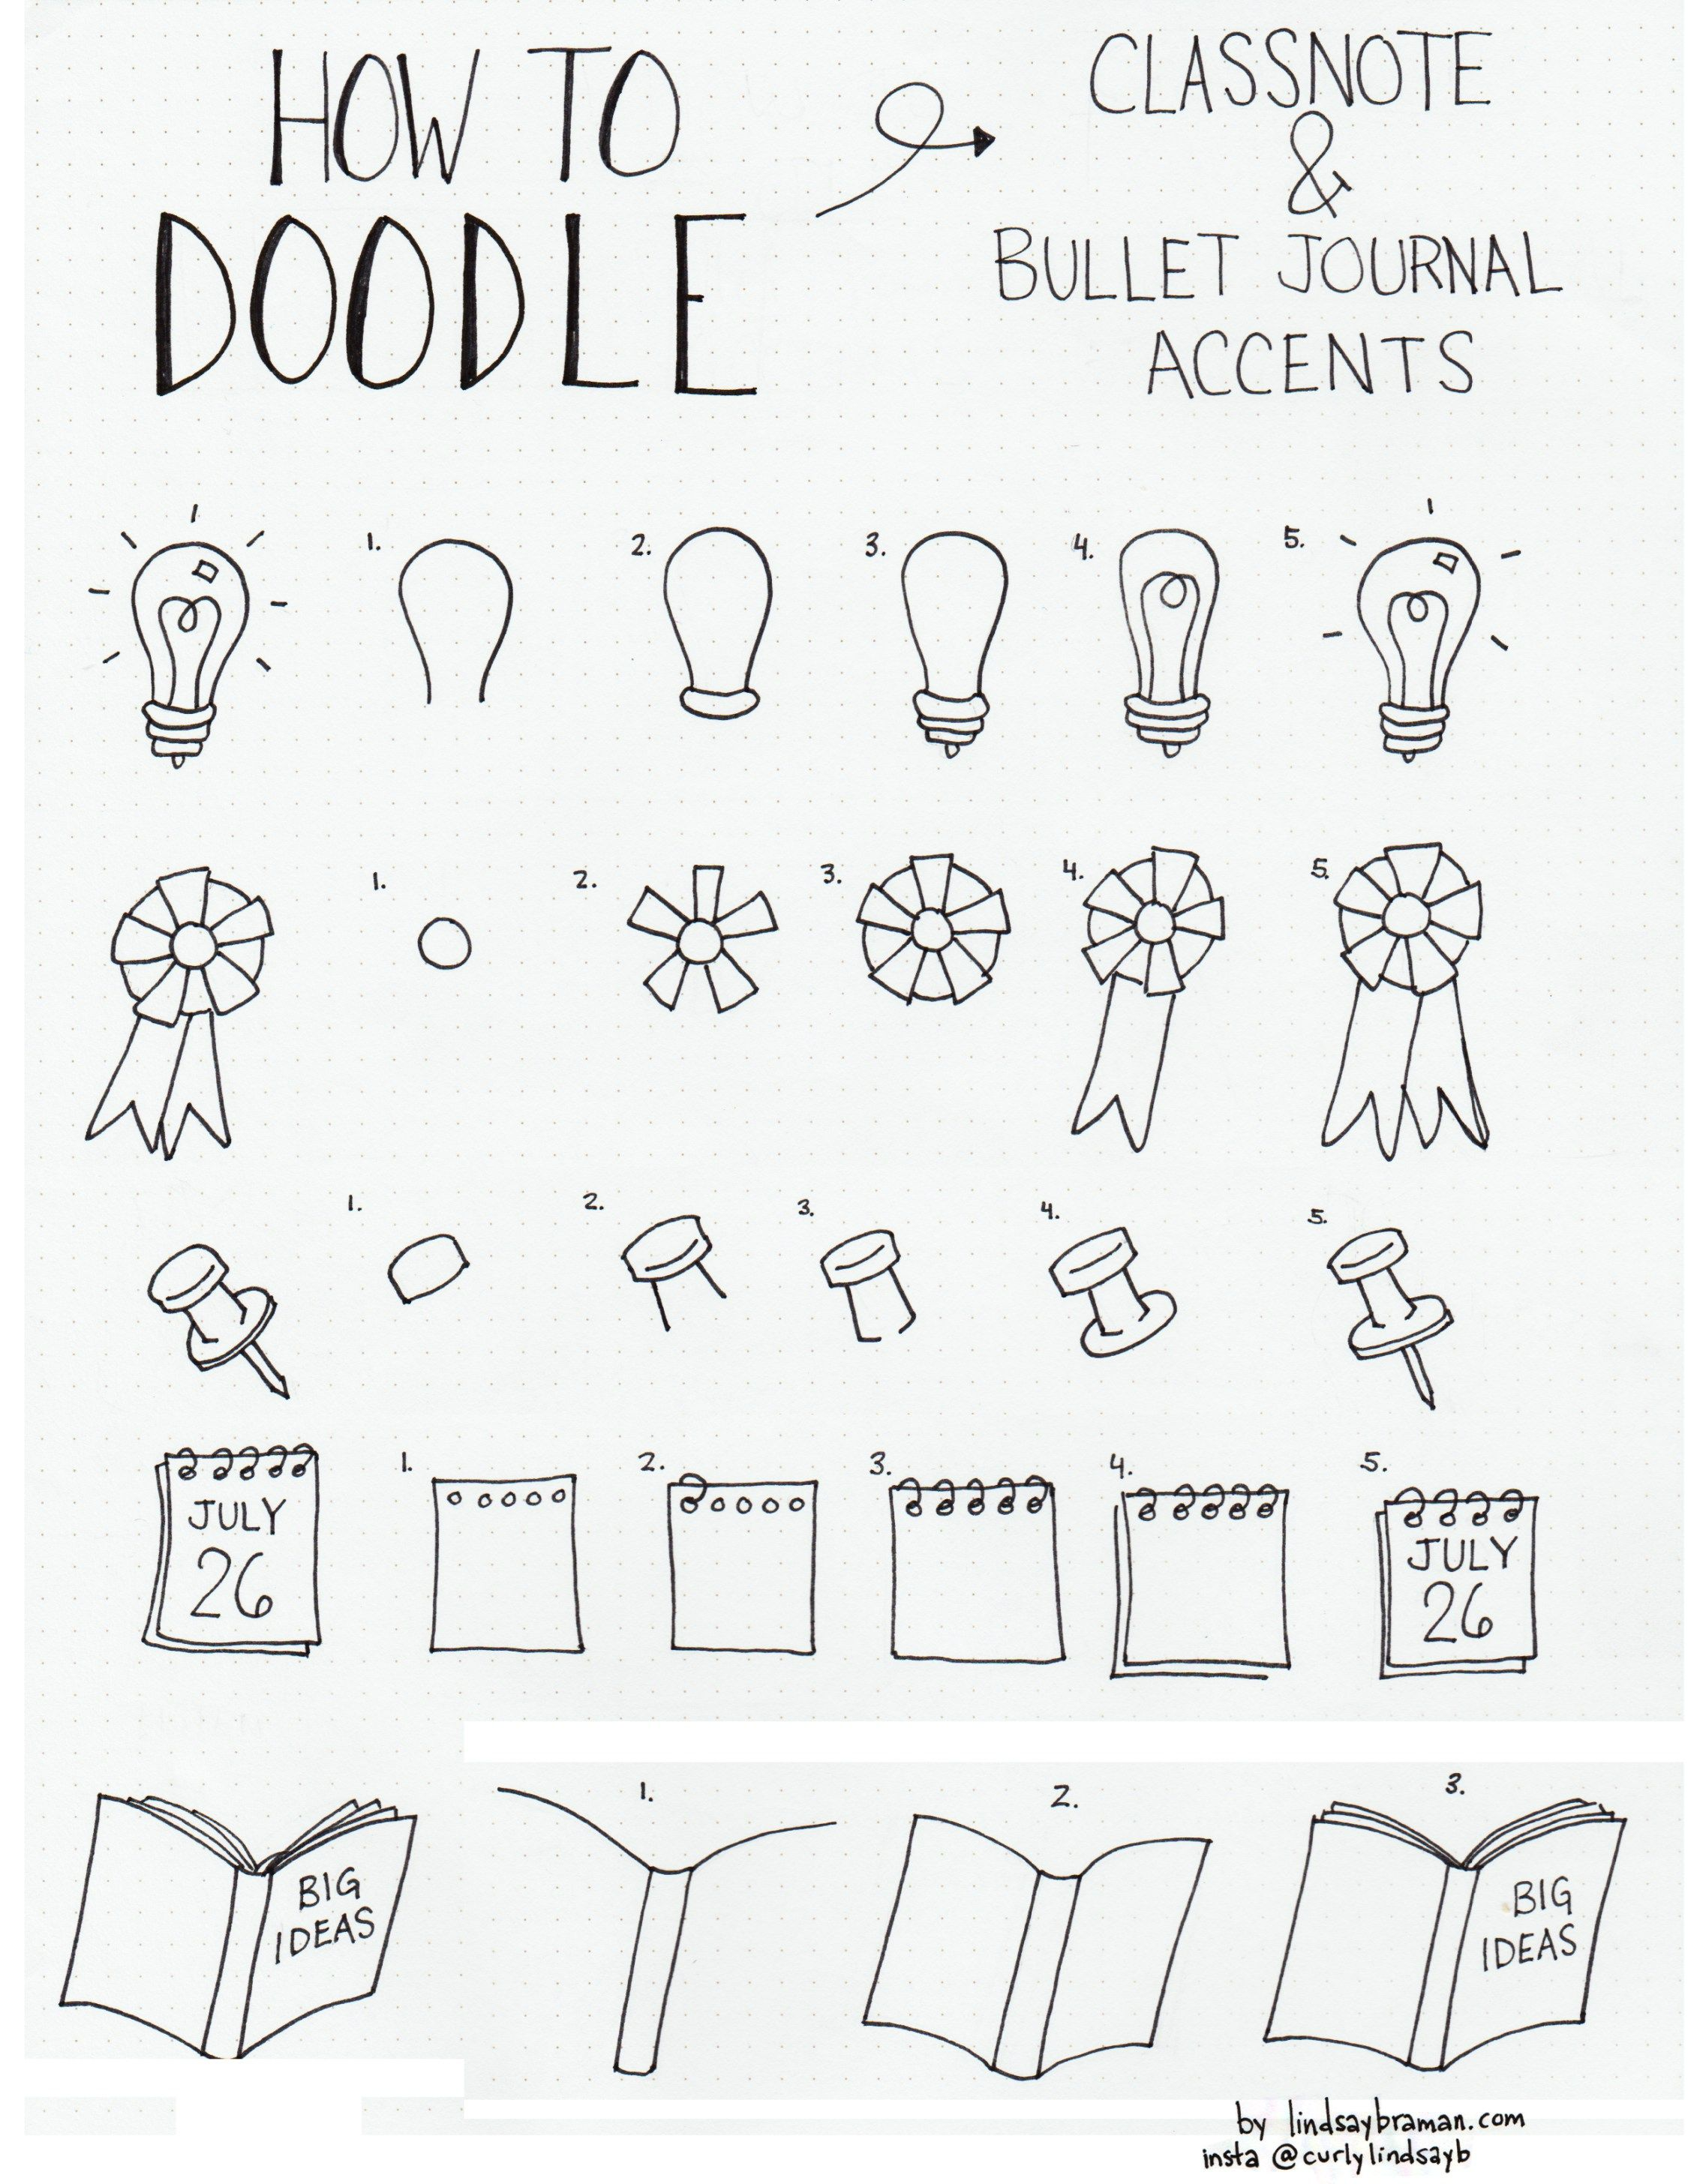 Doodle how to draw accents bujo bullet journal for How to draw doodles